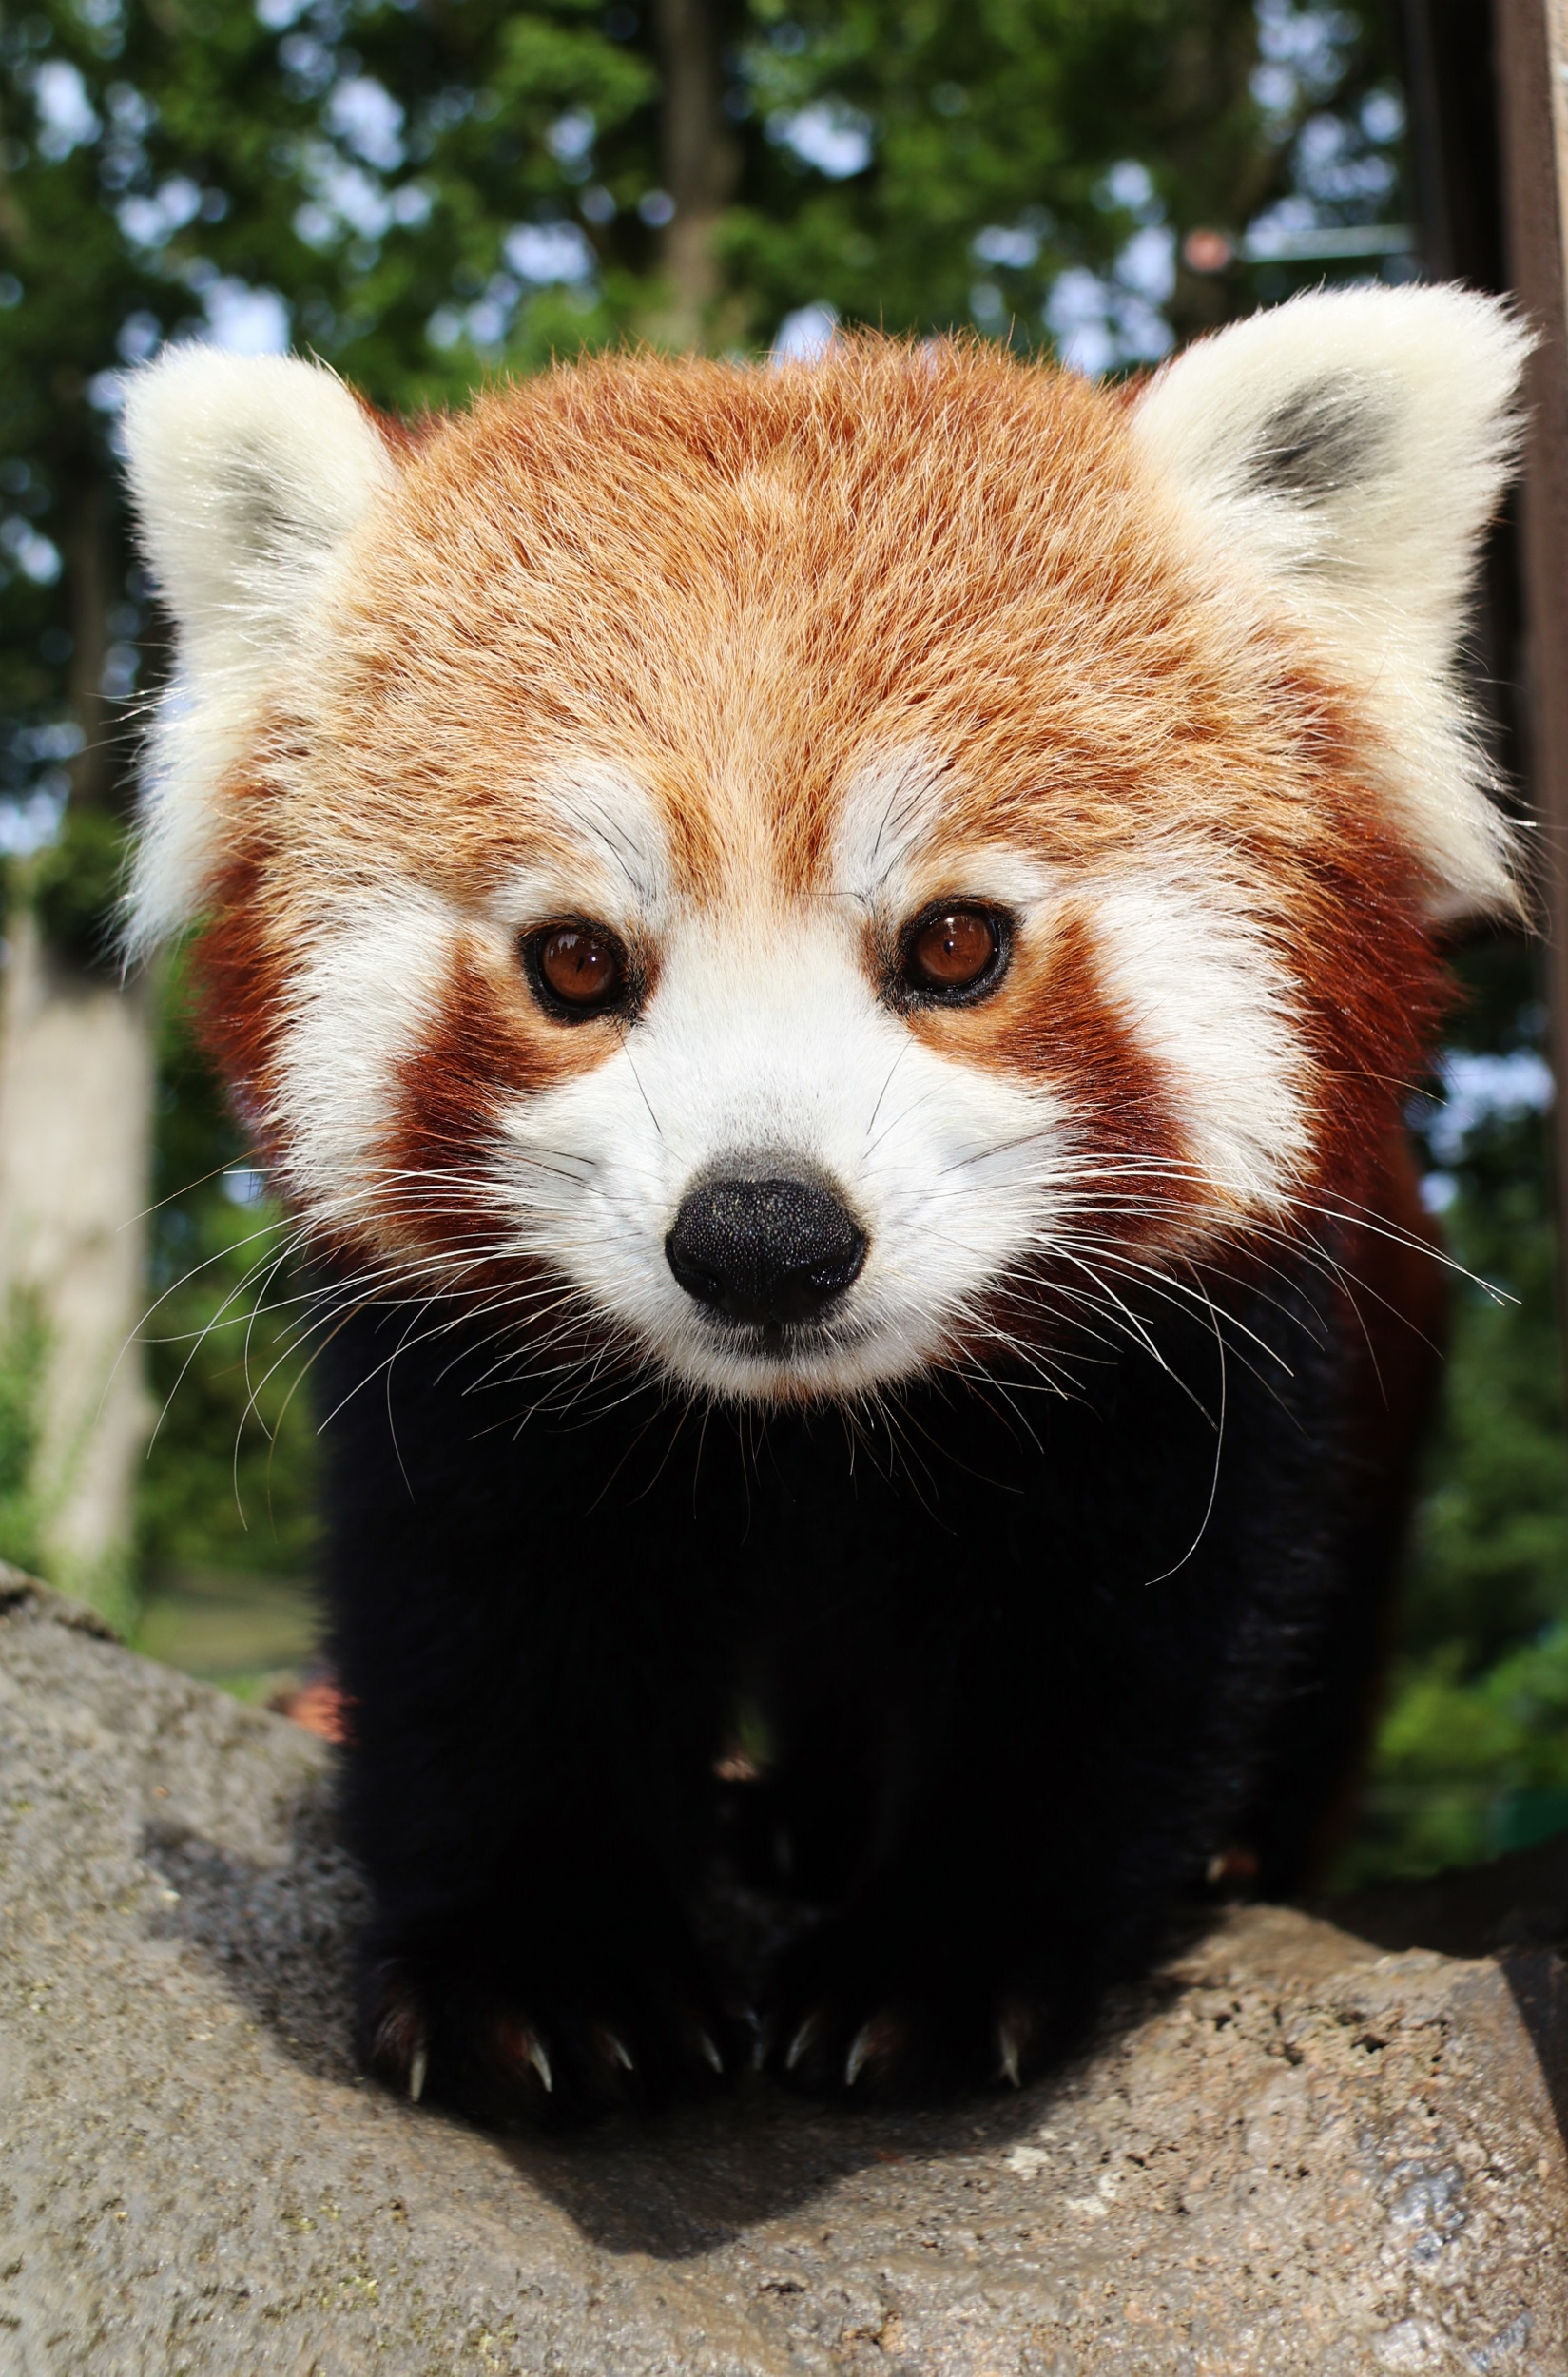 Image of: Ppt Endangered Red Panda Cub Welcomed At Longleat Discover Animals Endangered Red Panda Cub Welcomed At Longleat Discover Animals